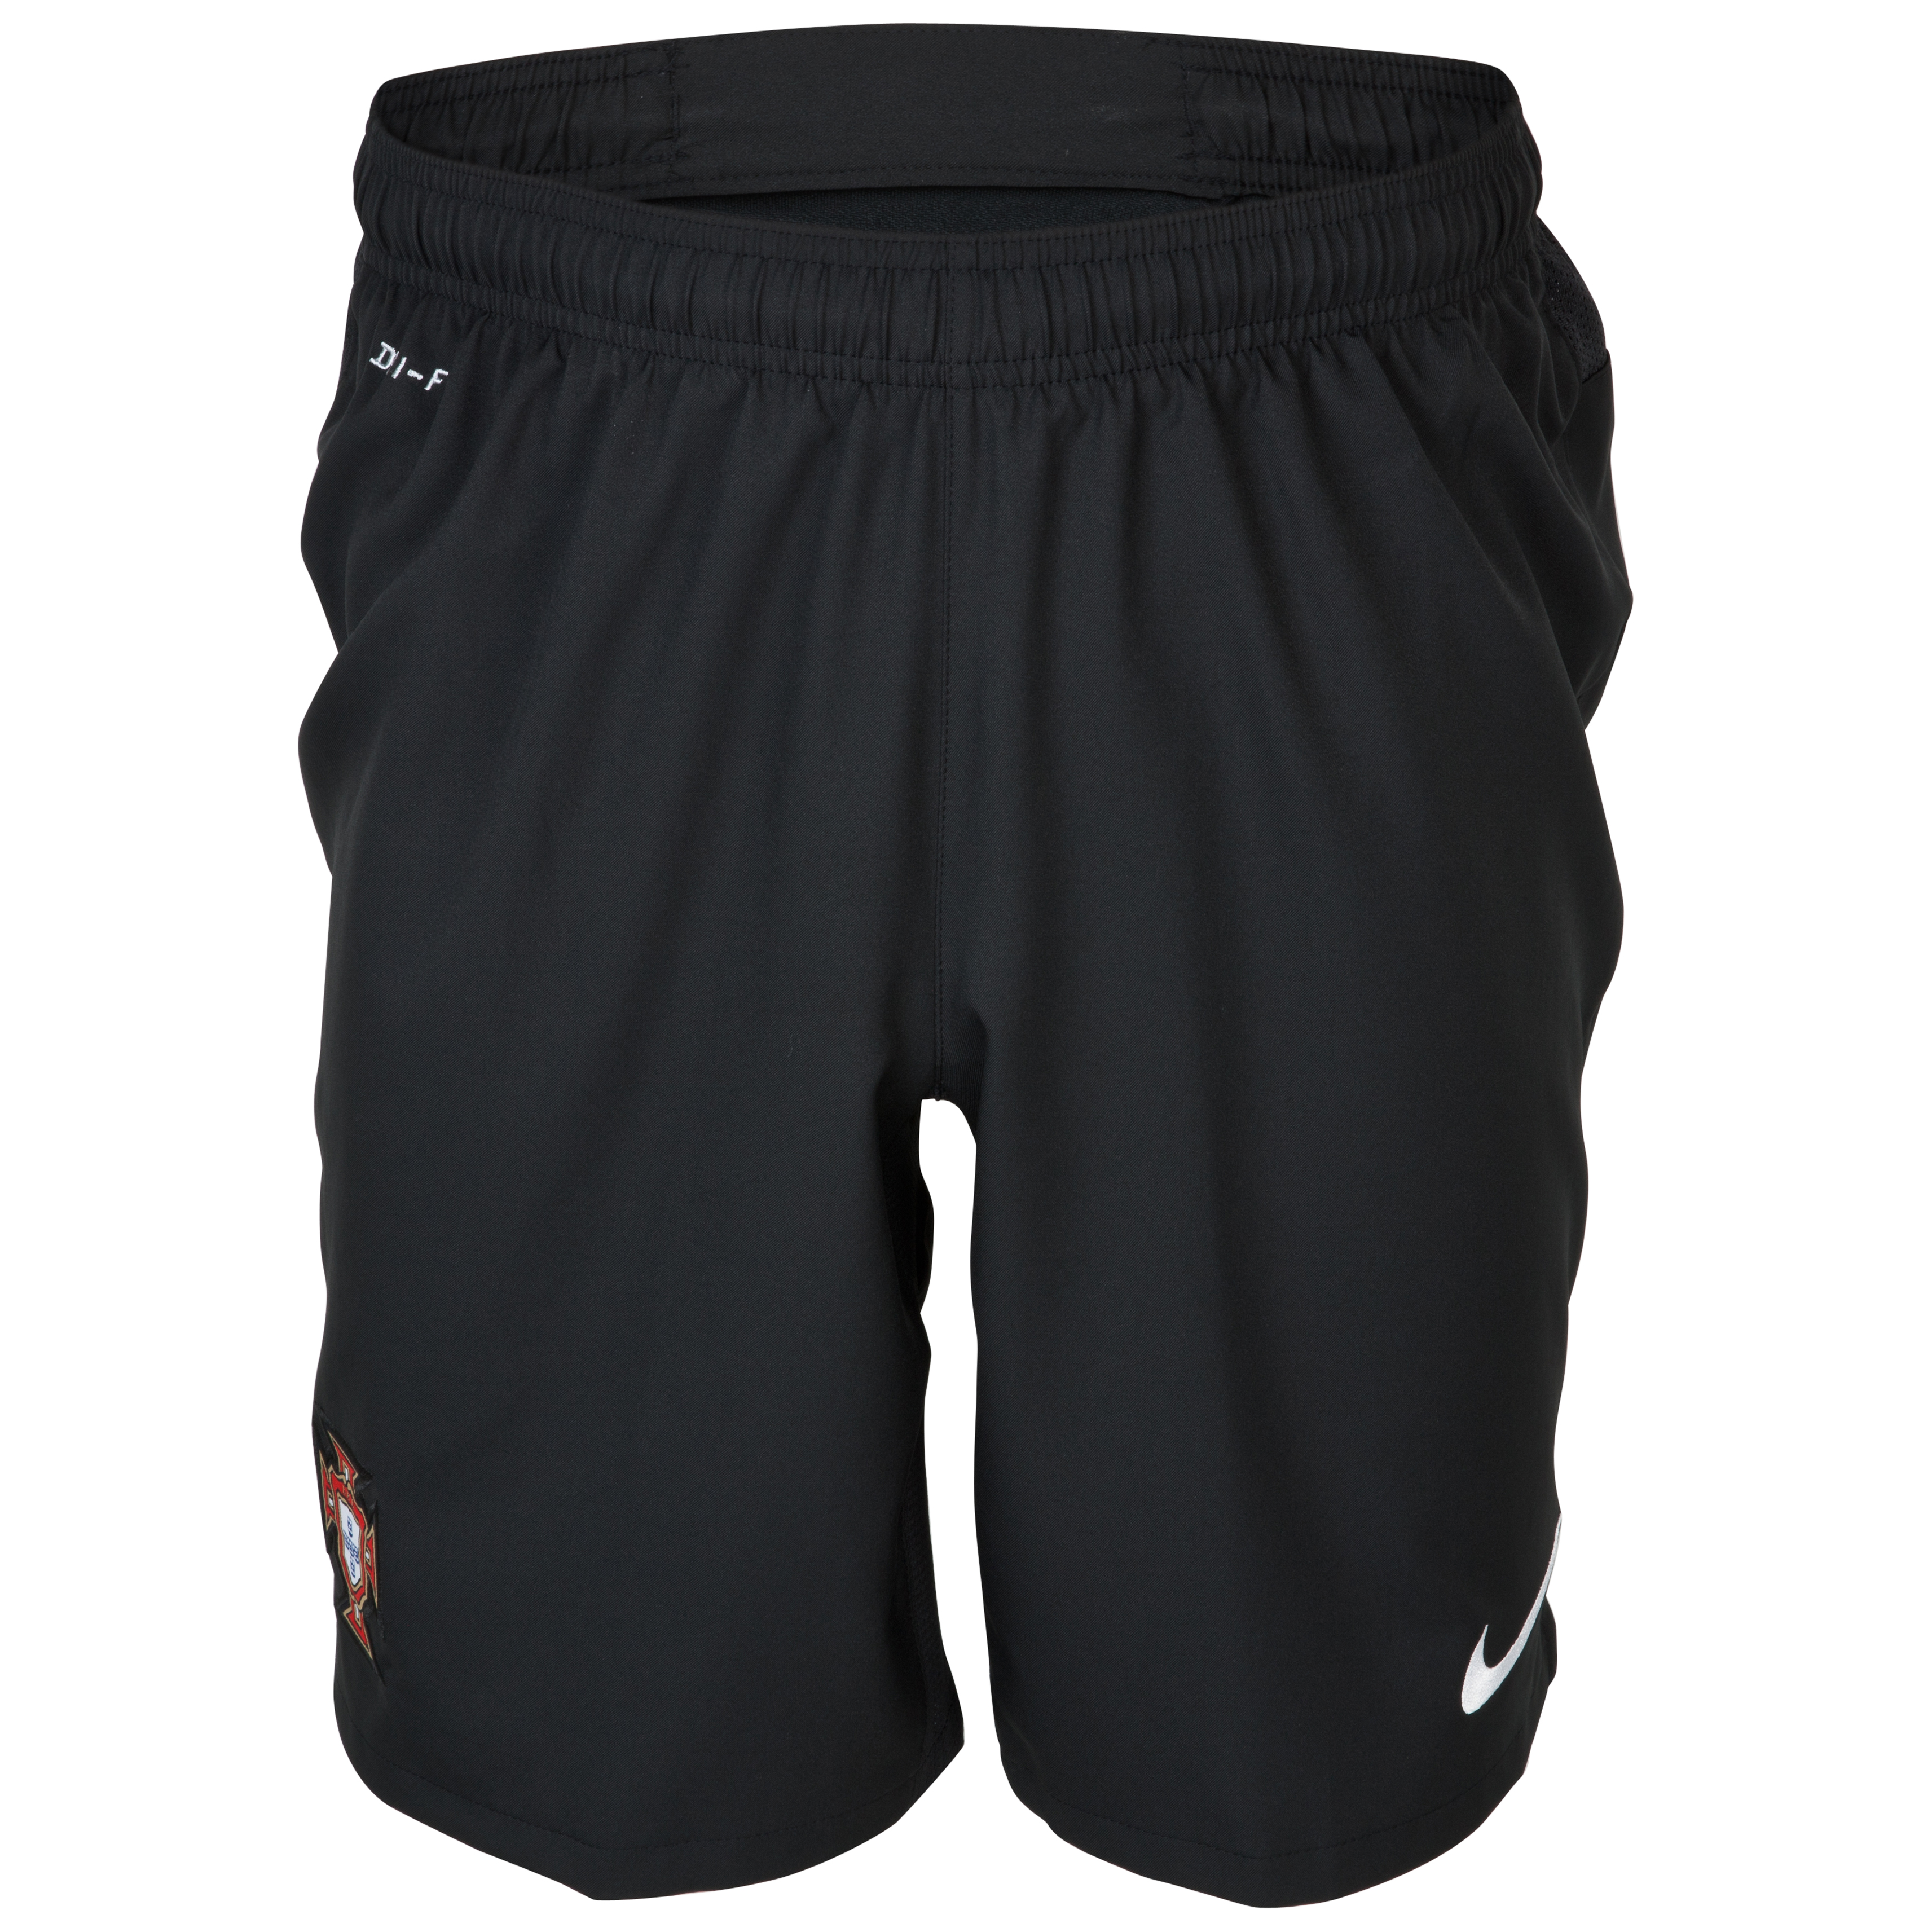 Portugal Away Short 2013/14 - Black/Football White